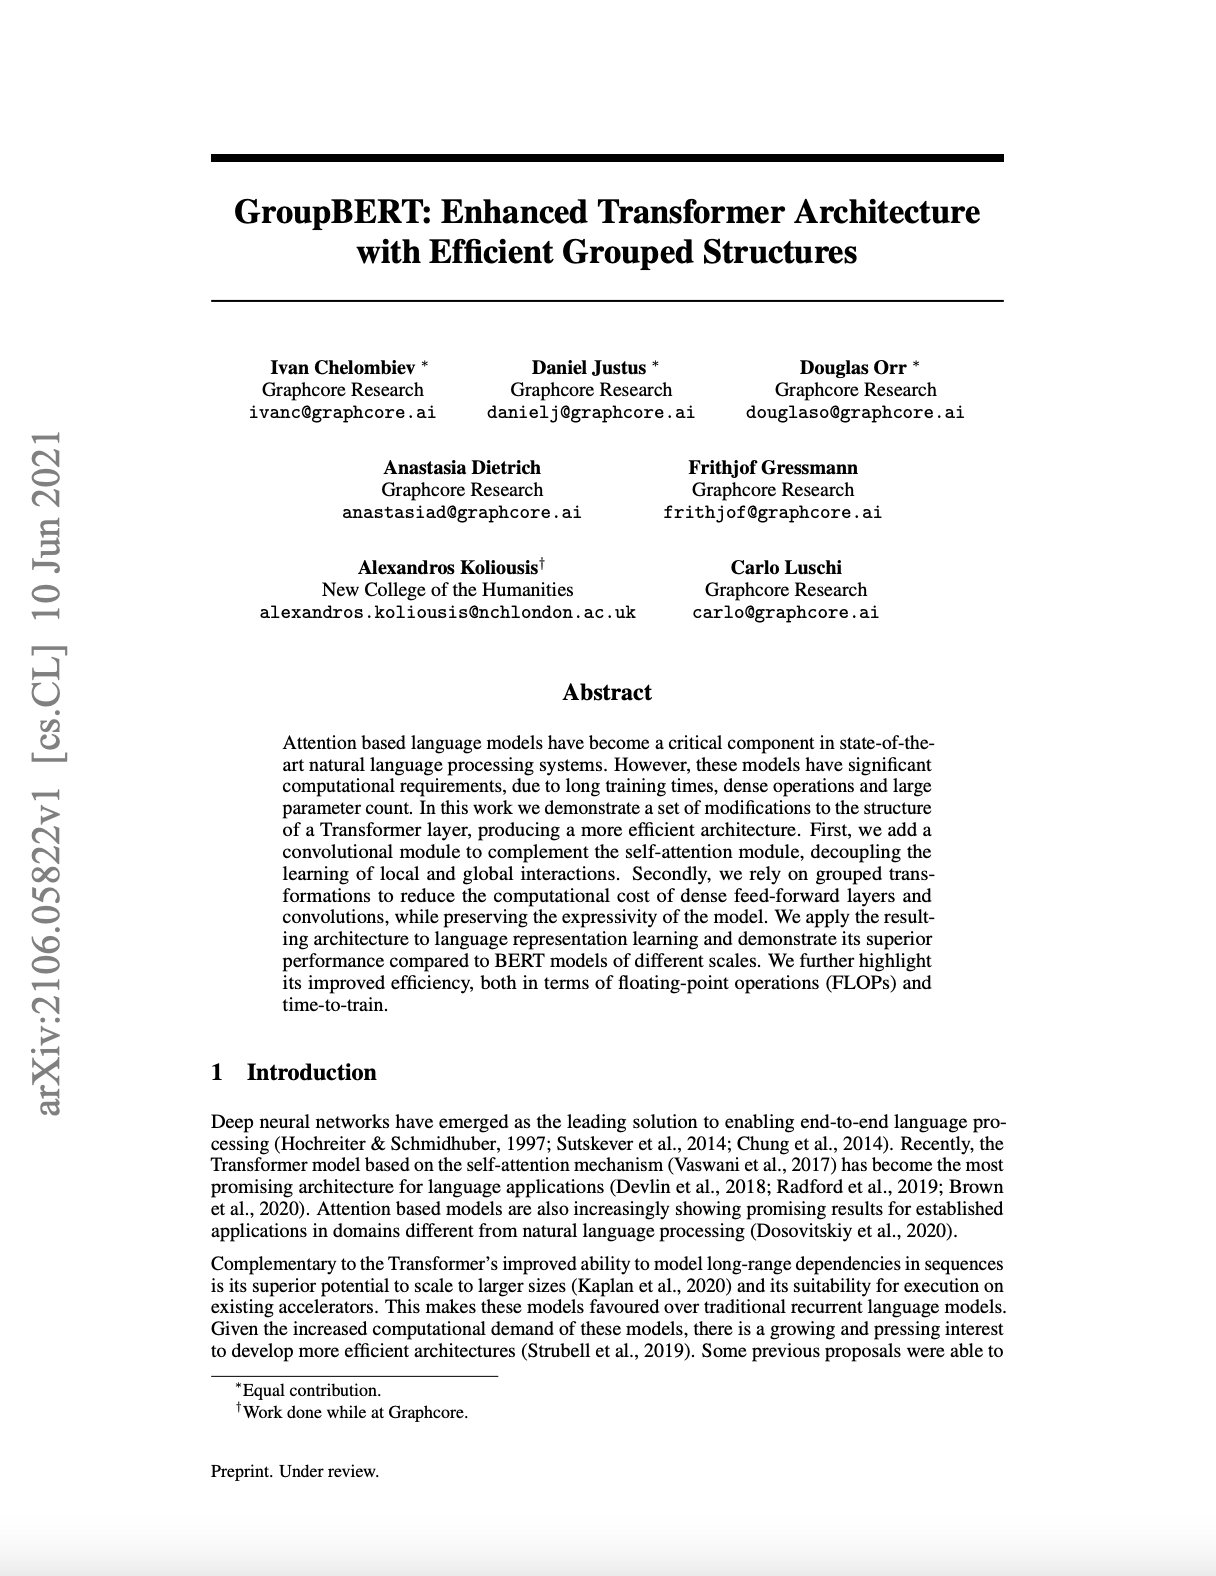 Graphcore Research: GroupBERT - Enhanced Transformer Architecture with Efficient Grouped Structures